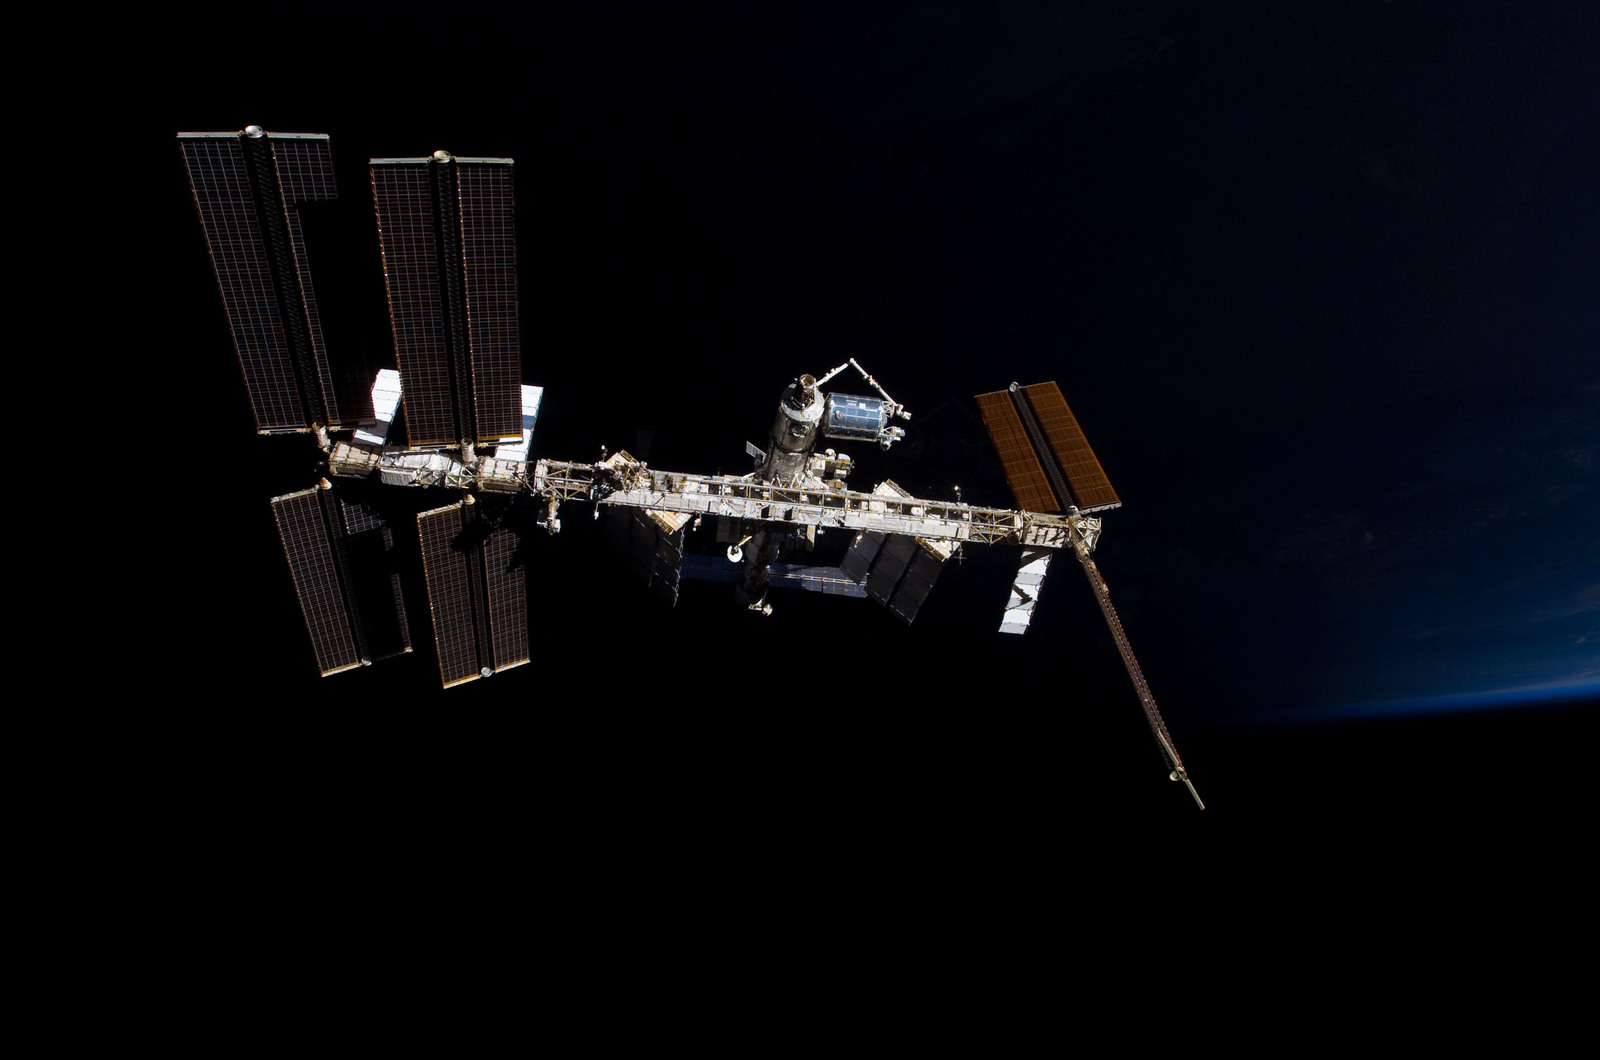 S122E009861 - STS-122 - View of ISS after STS-122 Undocking